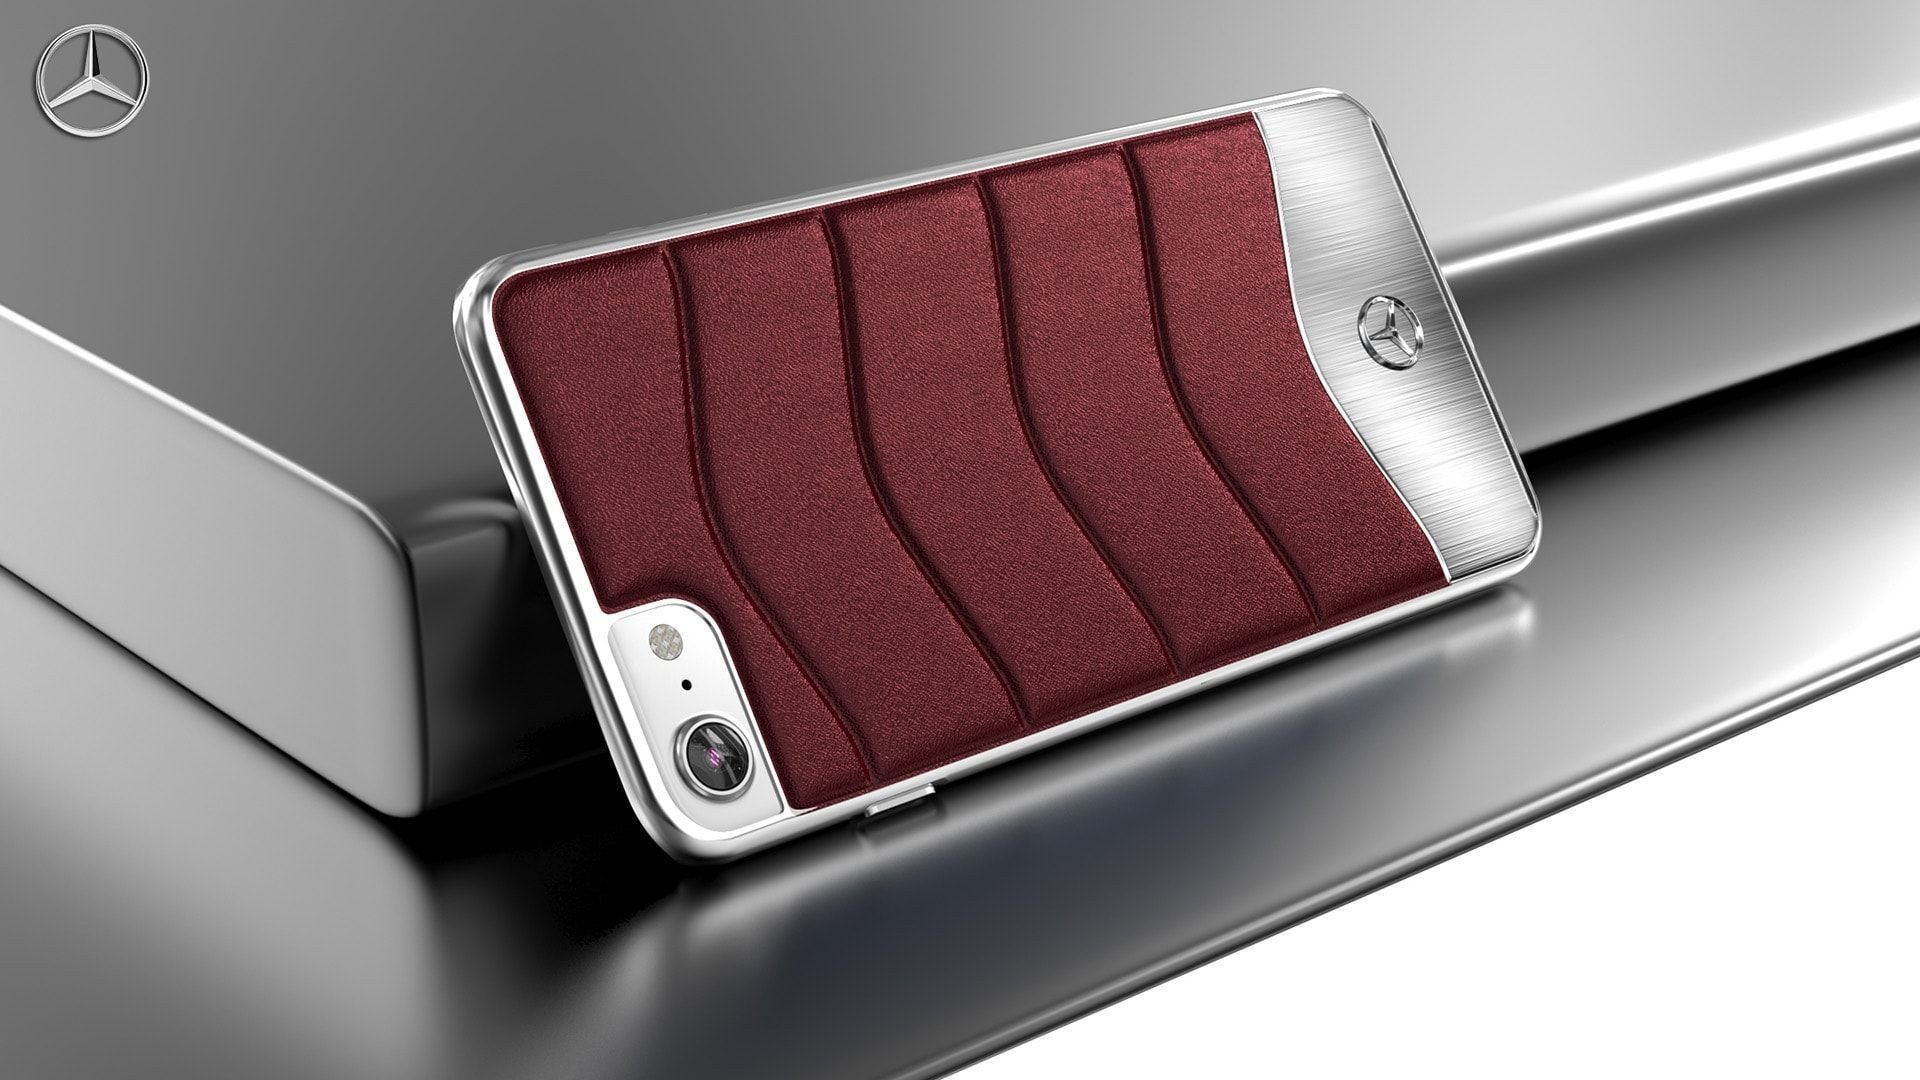 Mercedes Benz 174 Apple Iphone 8 Plus Concept S Coupe Series